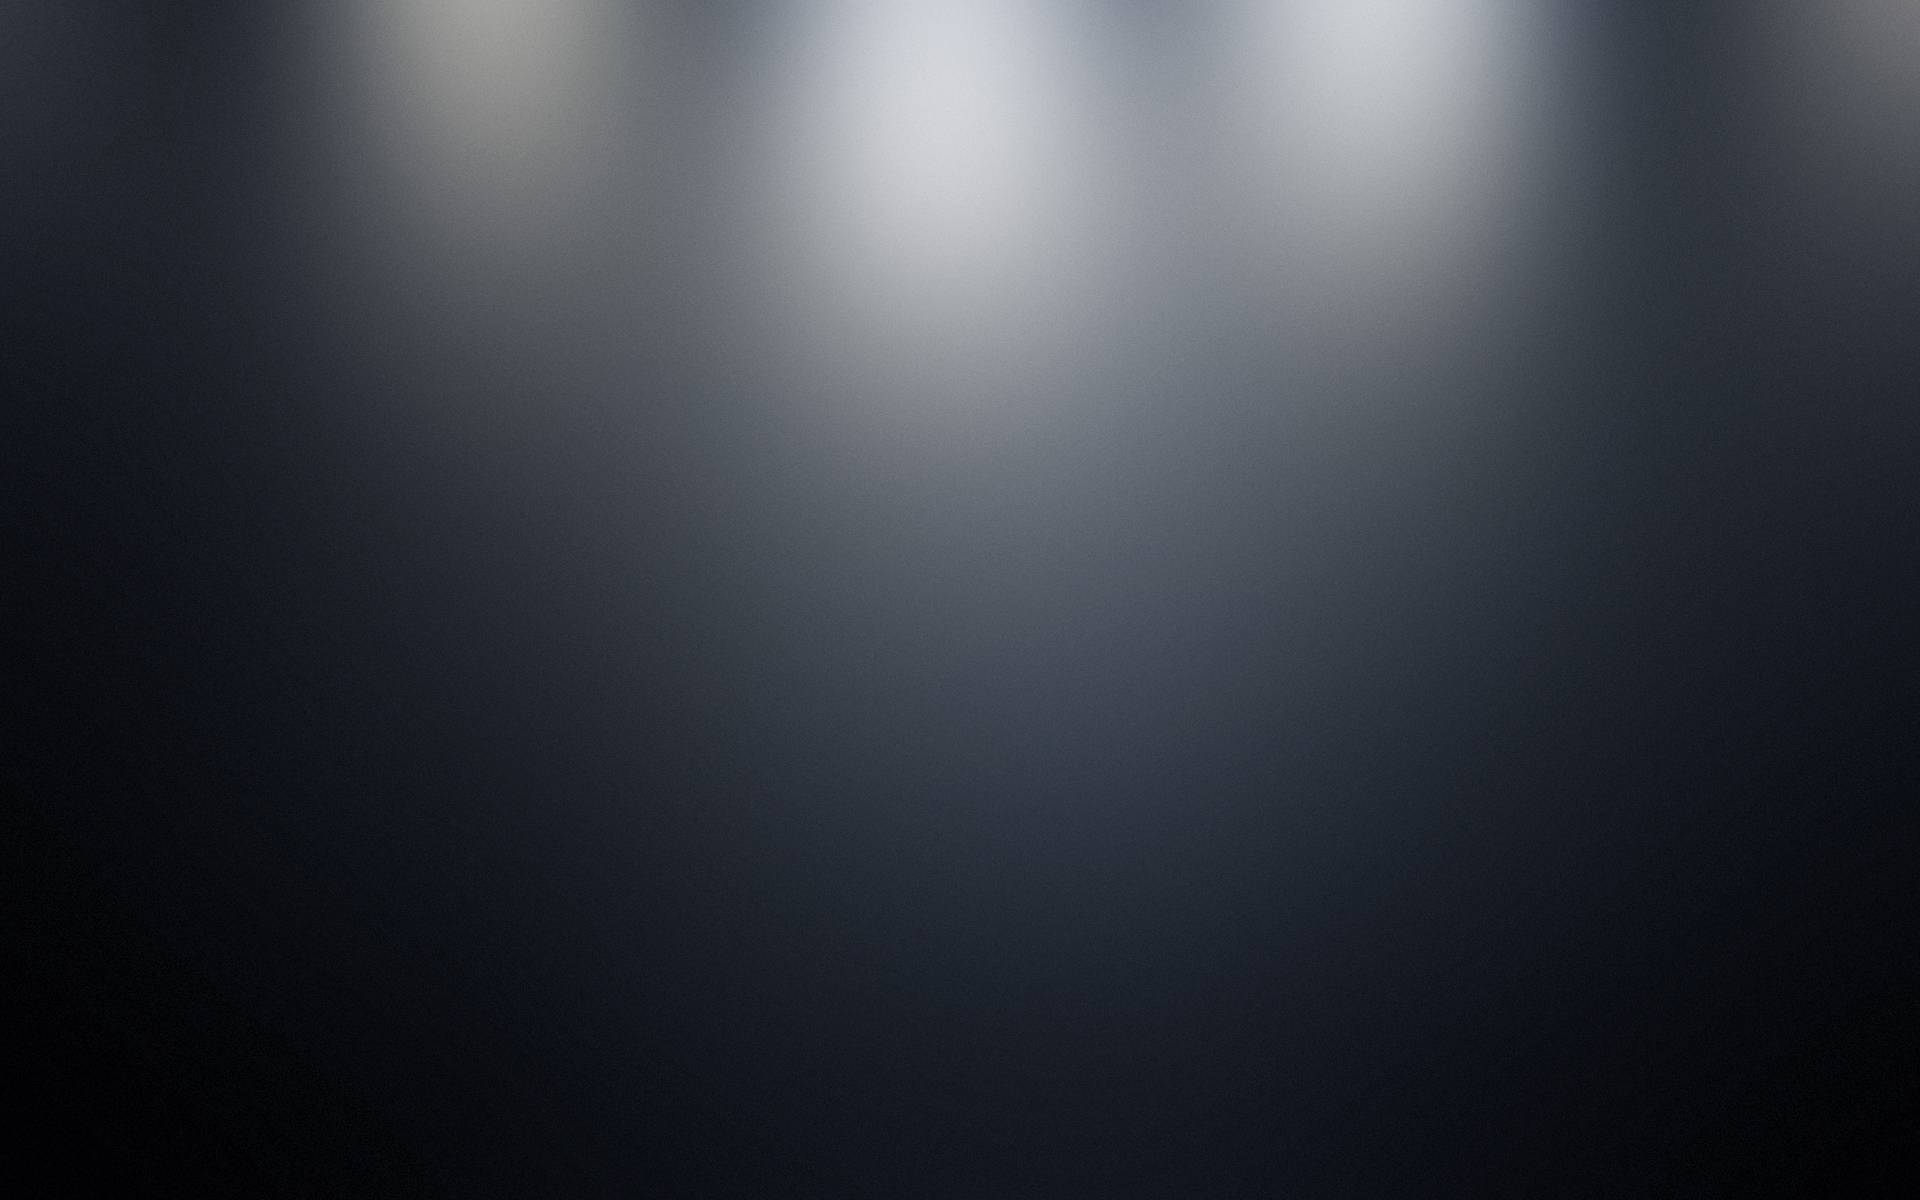 Dark Gradient wallpape...